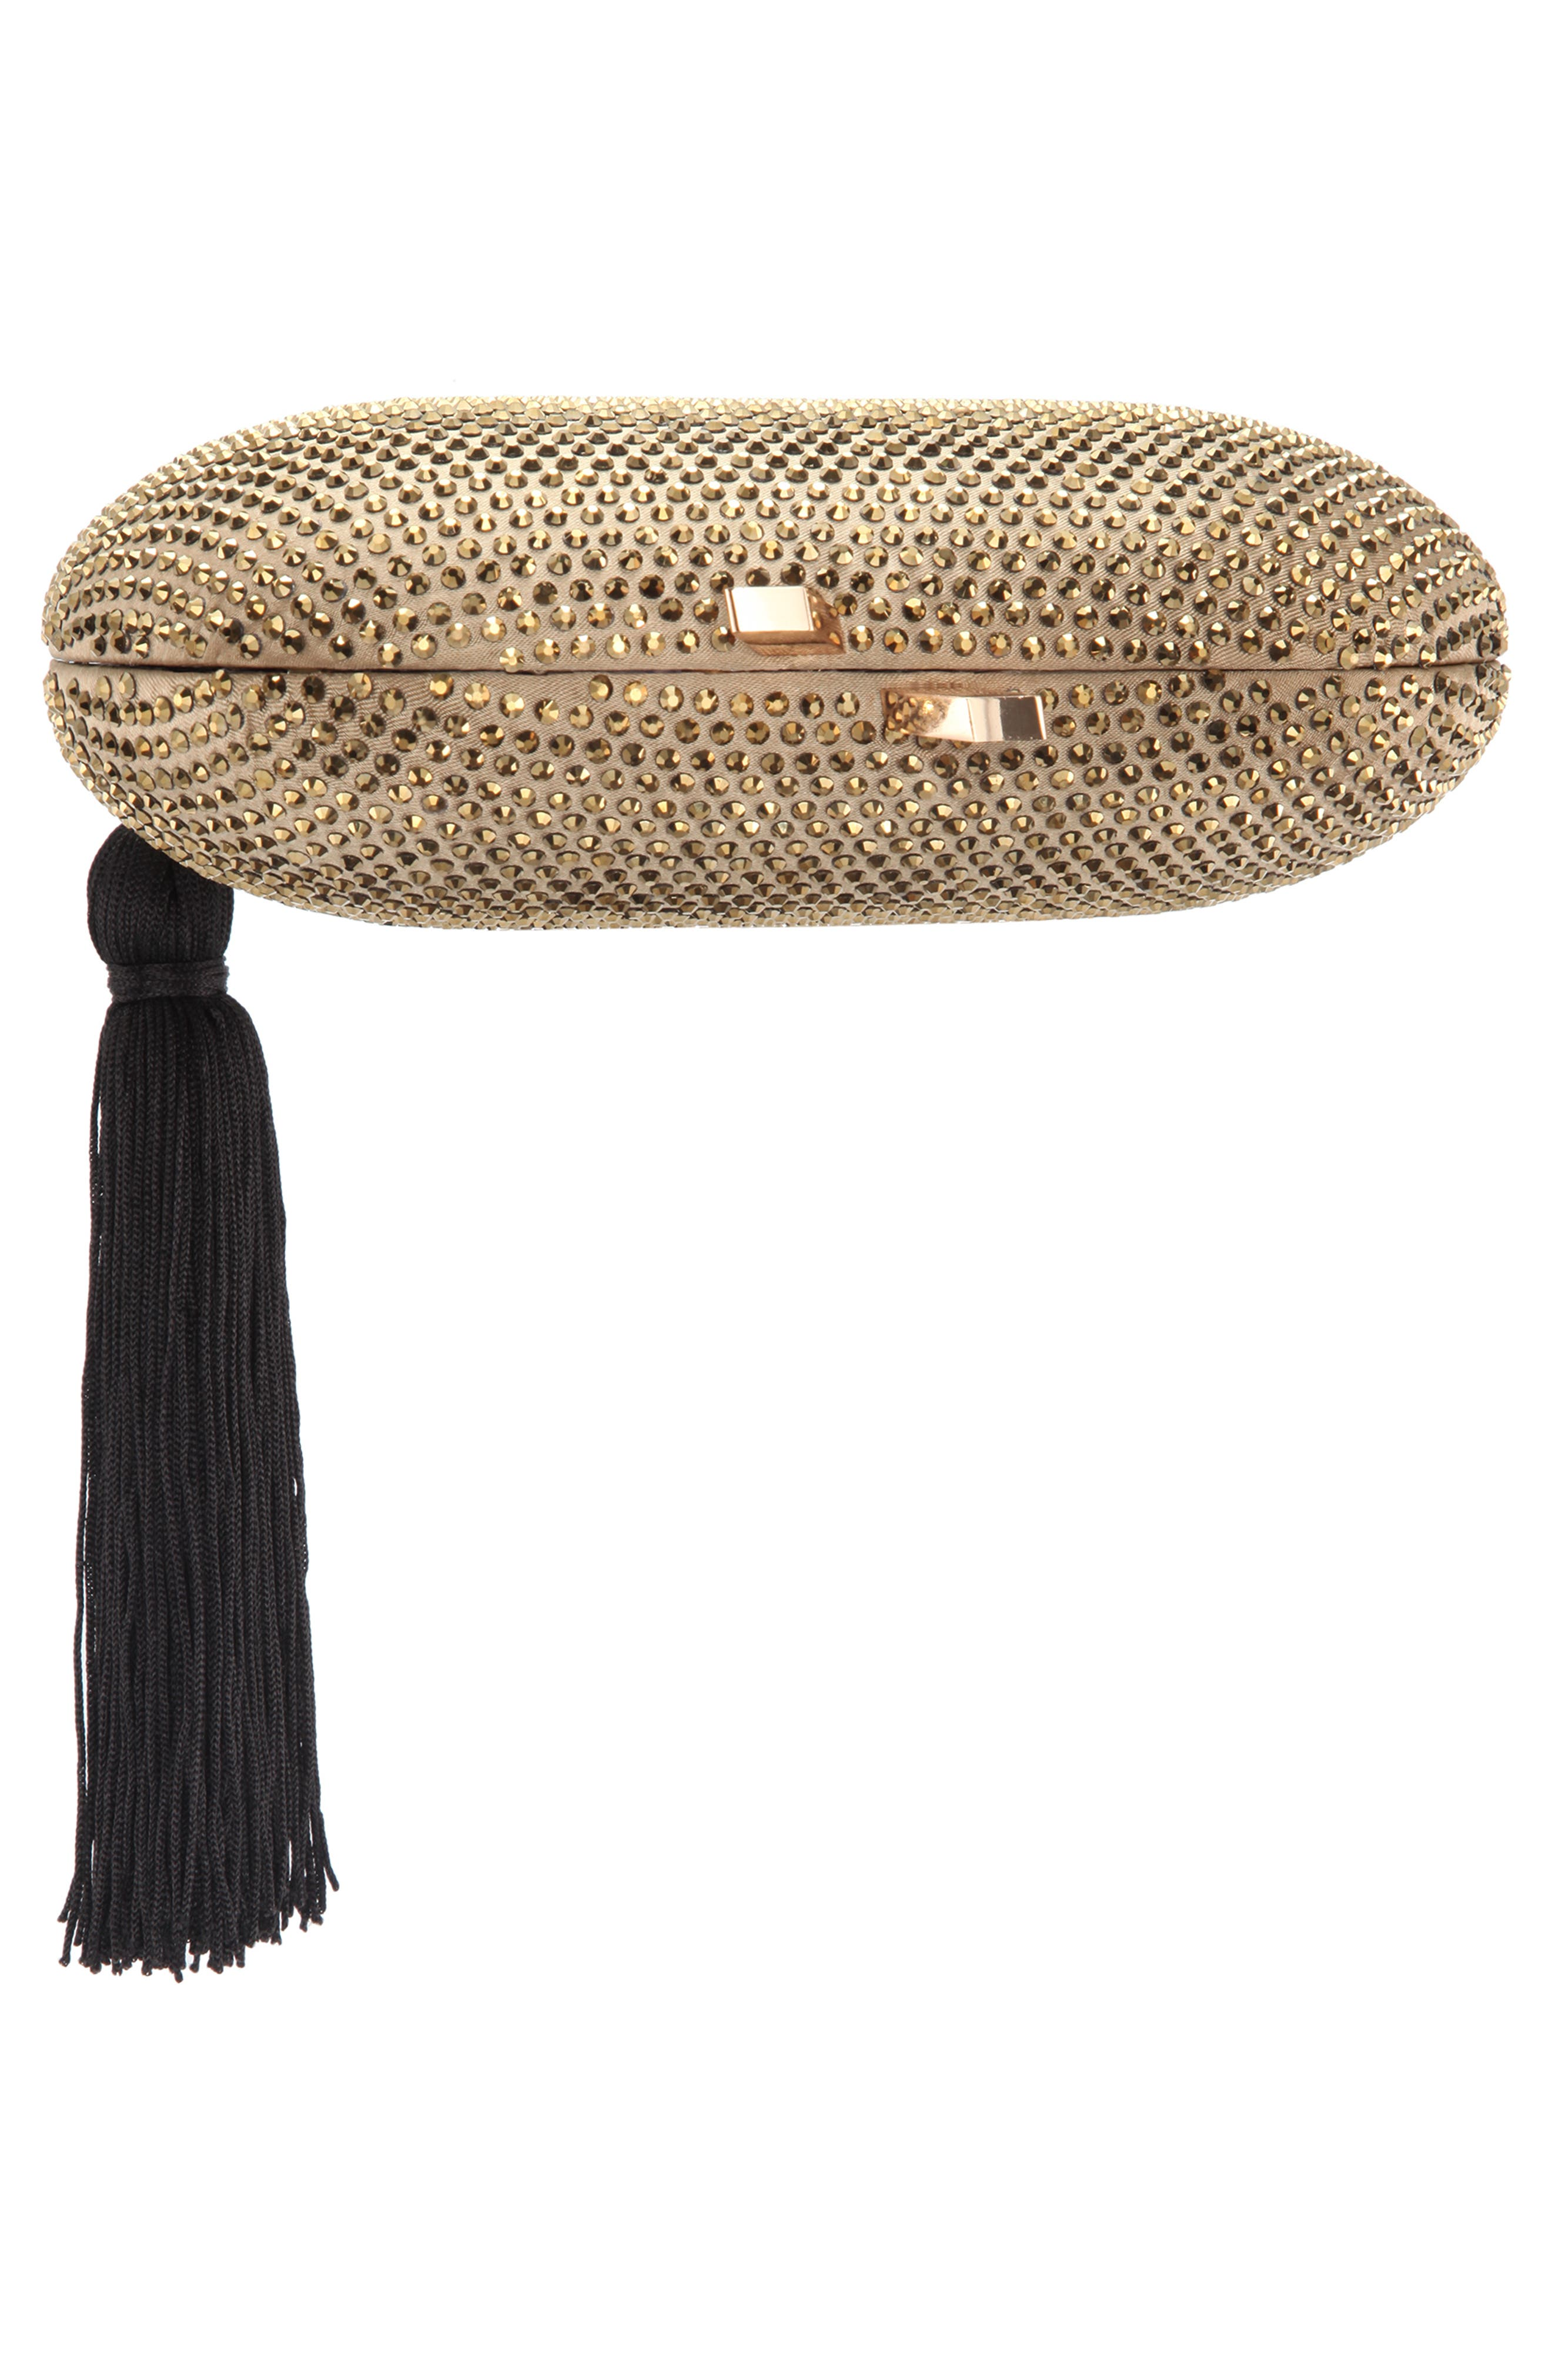 NINA, Oval Minaudière with Tassel, Alternate thumbnail 5, color, DARK GOLD